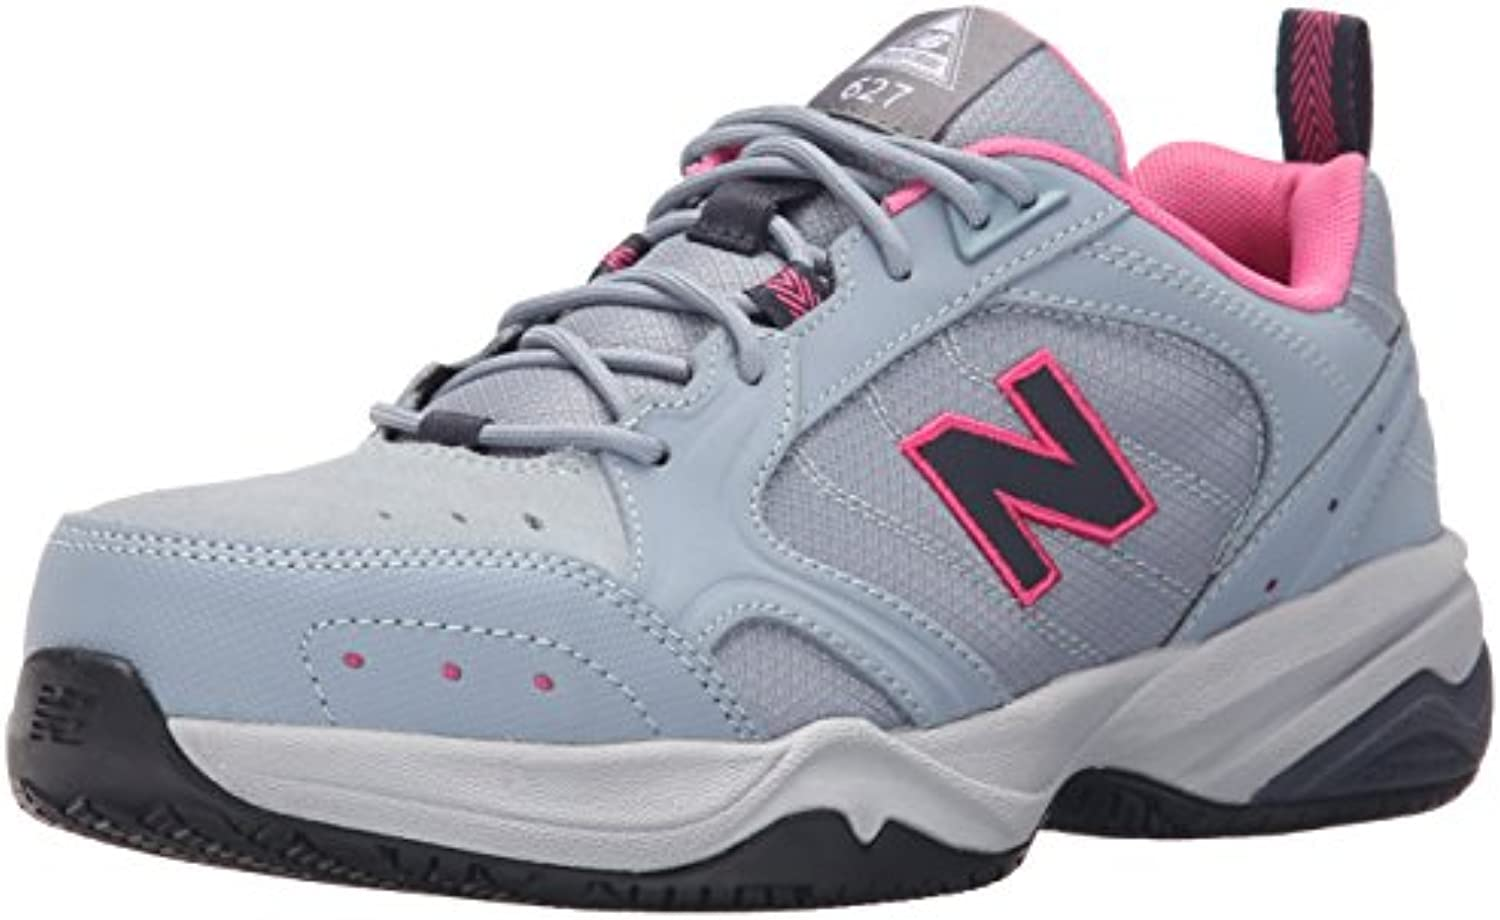 New Balance Wouomo WID627V1 Steel Toe Training Work scarpe,Light scarpe,Light scarpe,Light grigio rosa,10 2E US | Meno Costosi Di